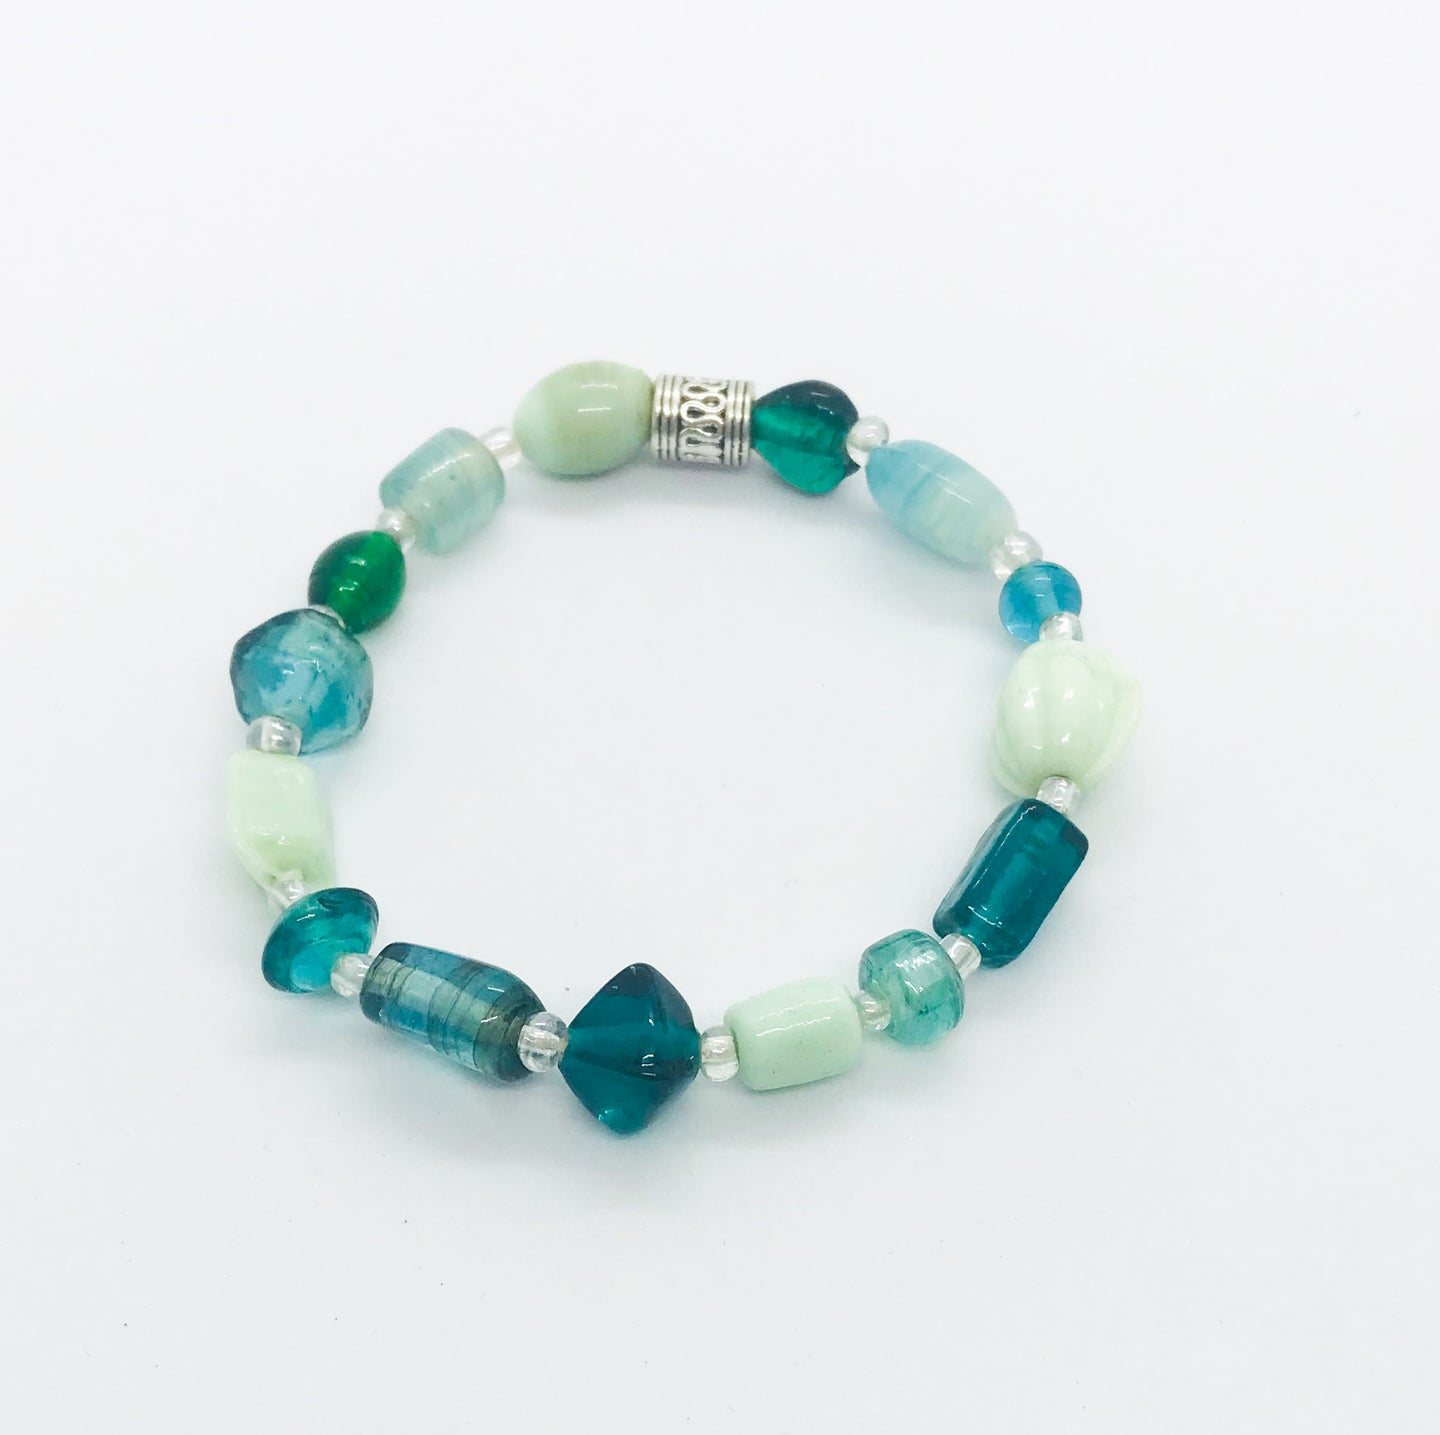 Glass Bead Stretchy Bracelet - B341